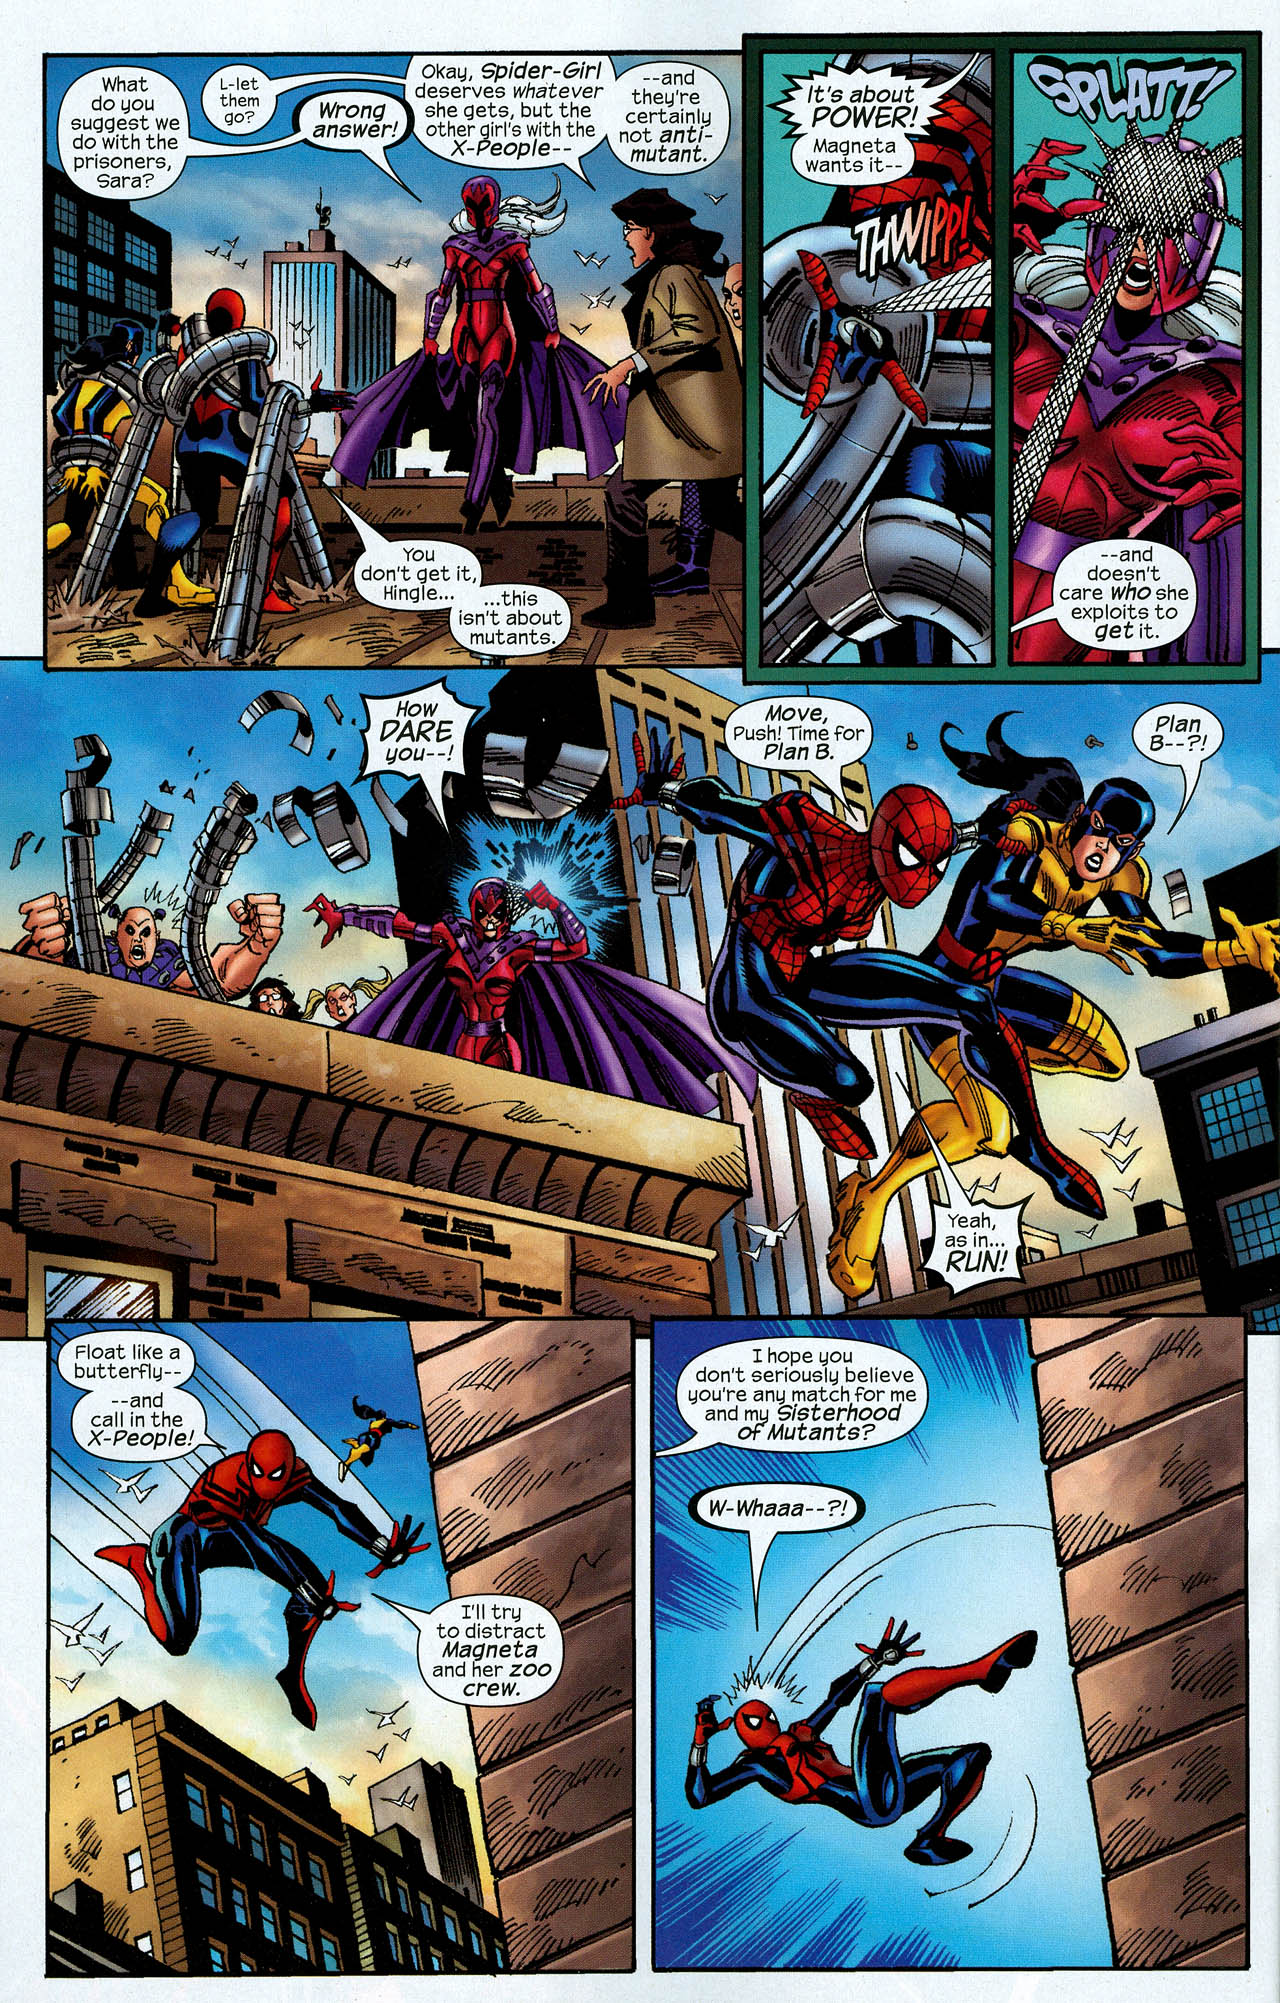 Read online Amazing Spider-Girl comic -  Issue #22 - 26